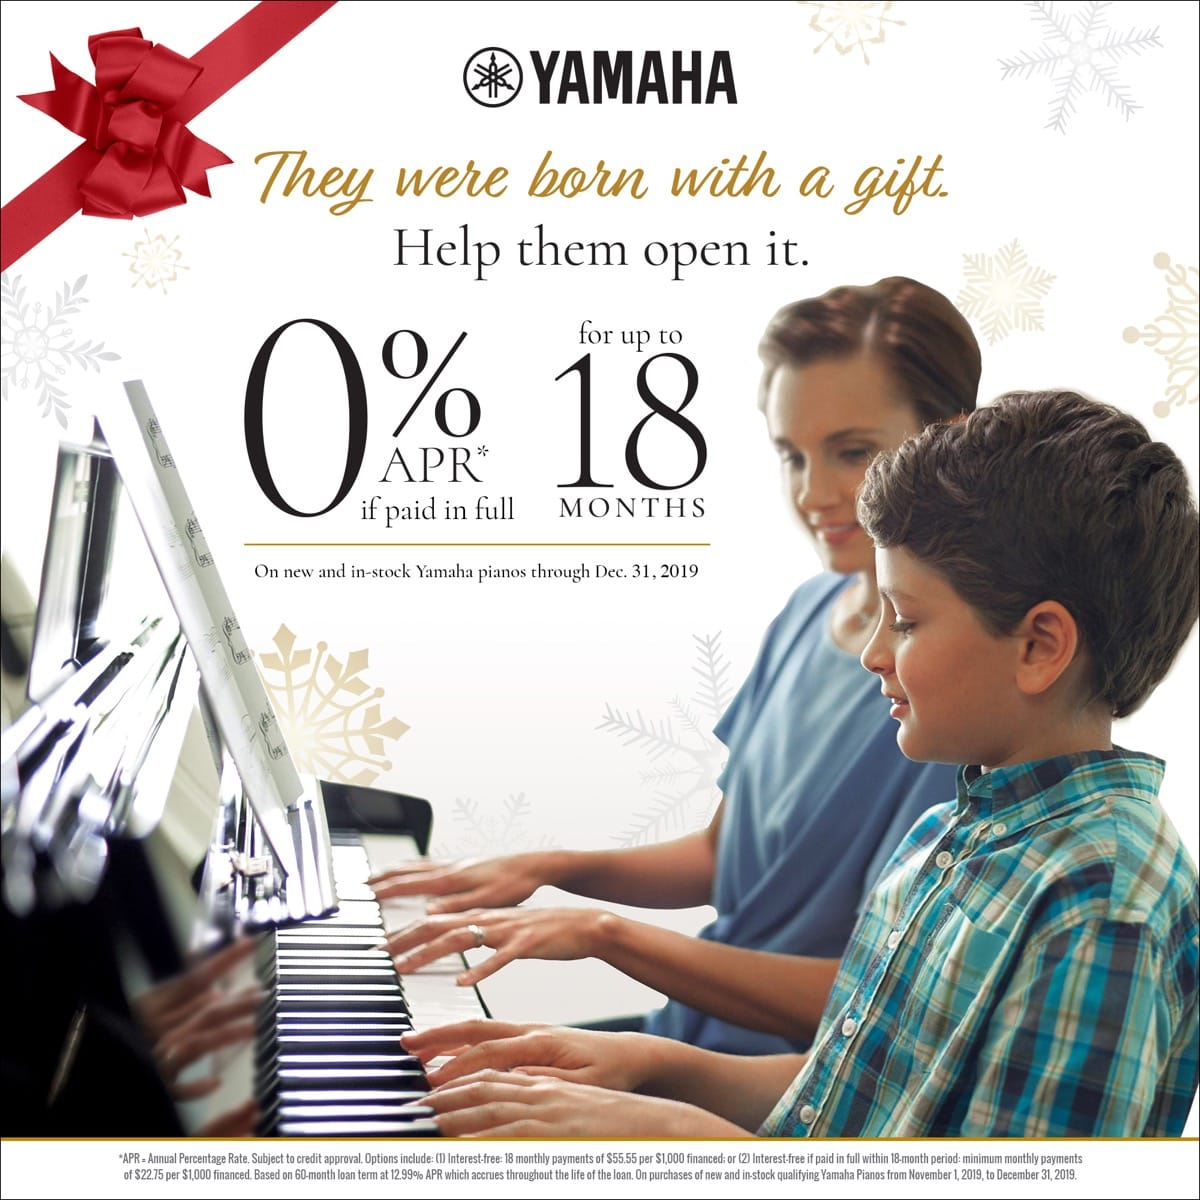 Yamaha Red Envelope 0% APR Promotion